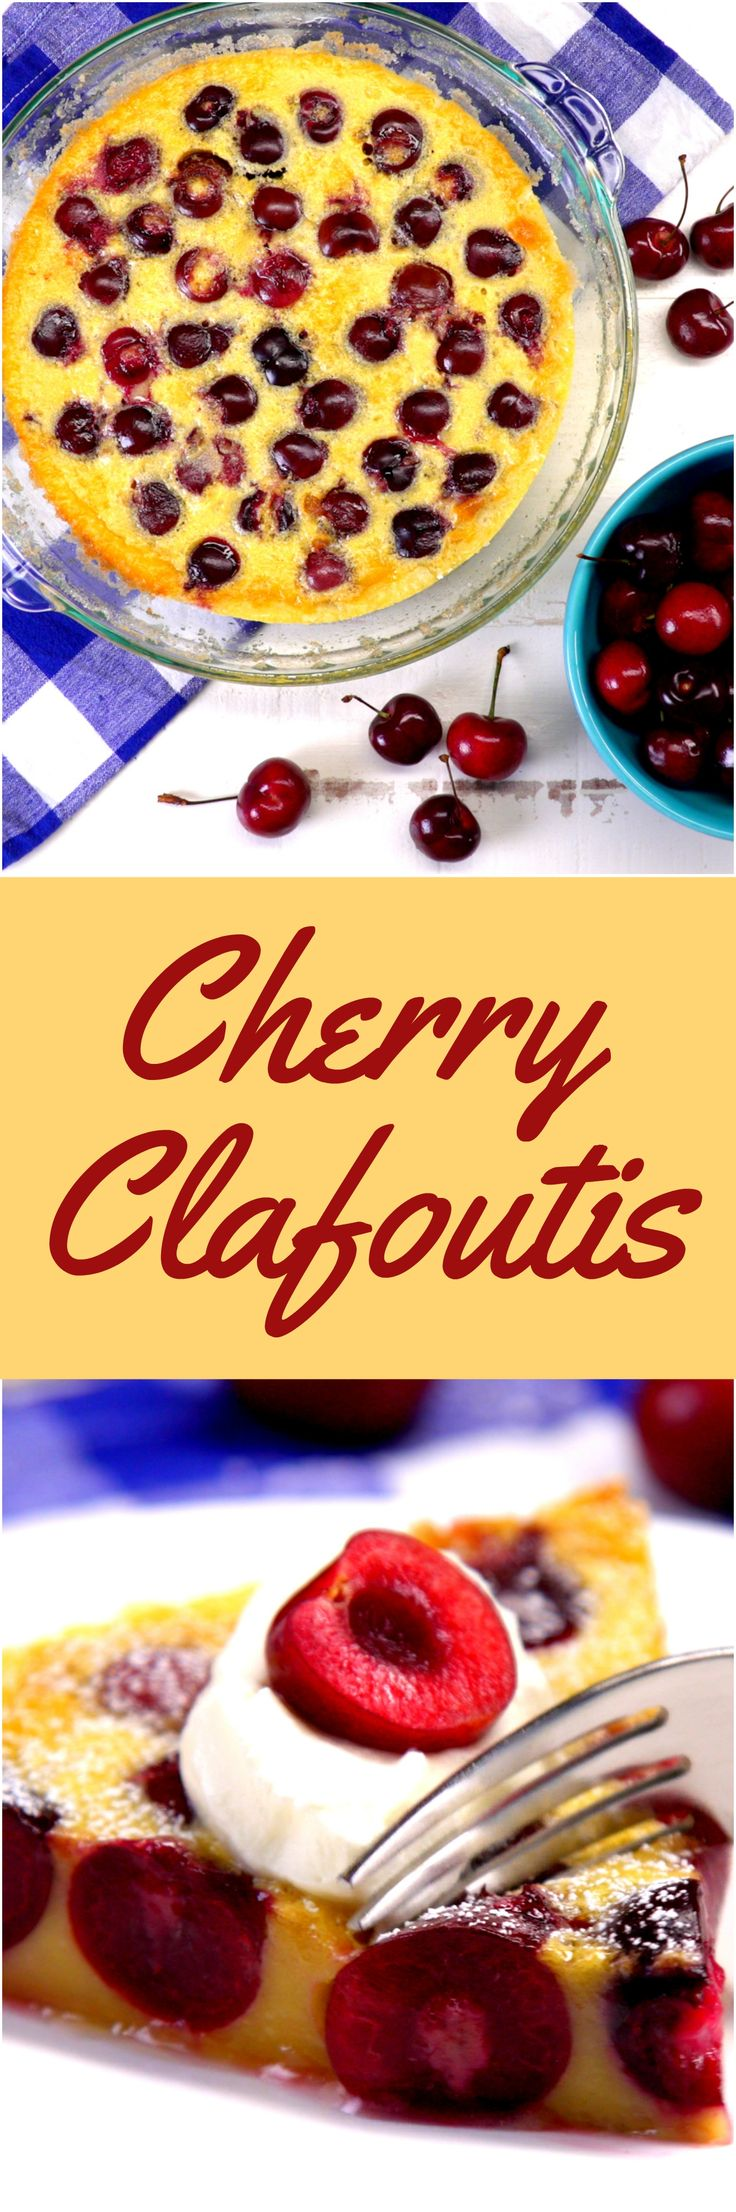 """Surprise guests with a summer dessert that's not the expected crumble or pie — make a cherry clafoutis: a rich custard studded with ripe, sweet cherries, and dusted with powdered sugar. French desserts may seem intimidating, but clafoutis (pronounced """"cla-foo-tee"""") couldn't be easier. You don't even have to do any mixing, because you can whip up the batter right in the blender."""